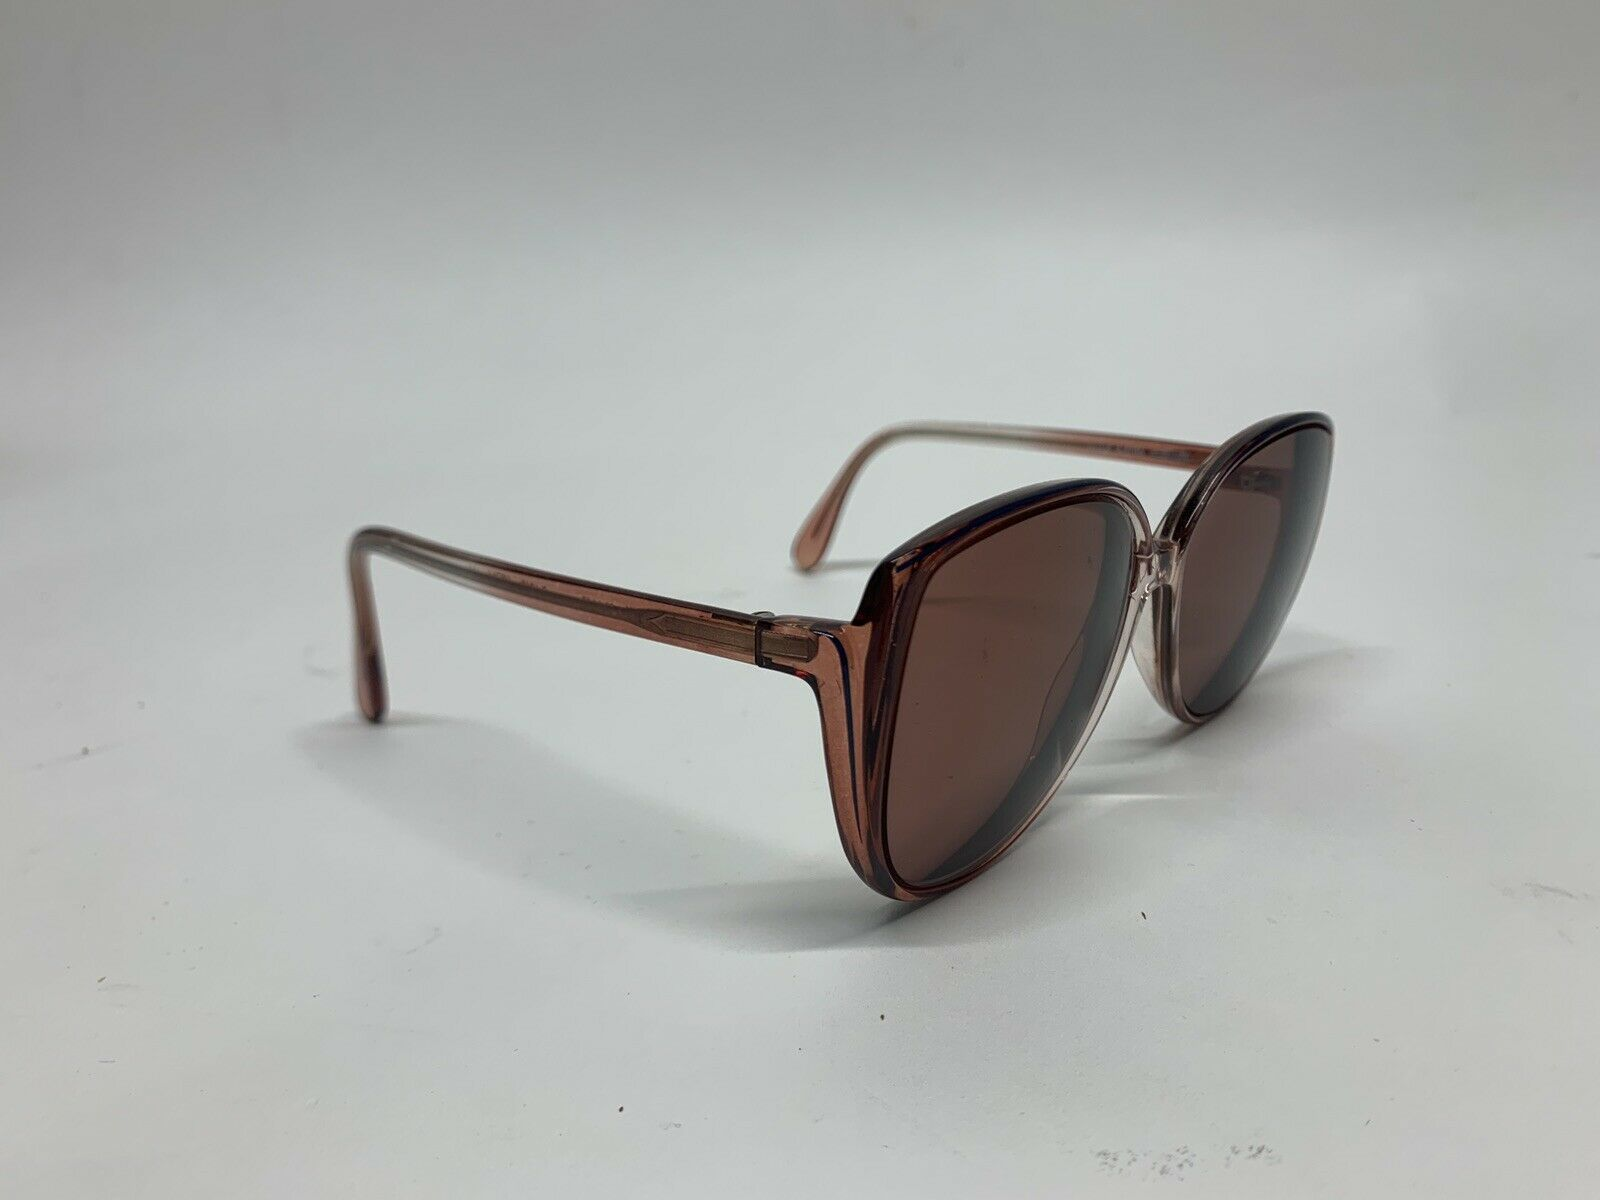 Vintage Austrian Sunglasses By Silhouette From Th… - image 2